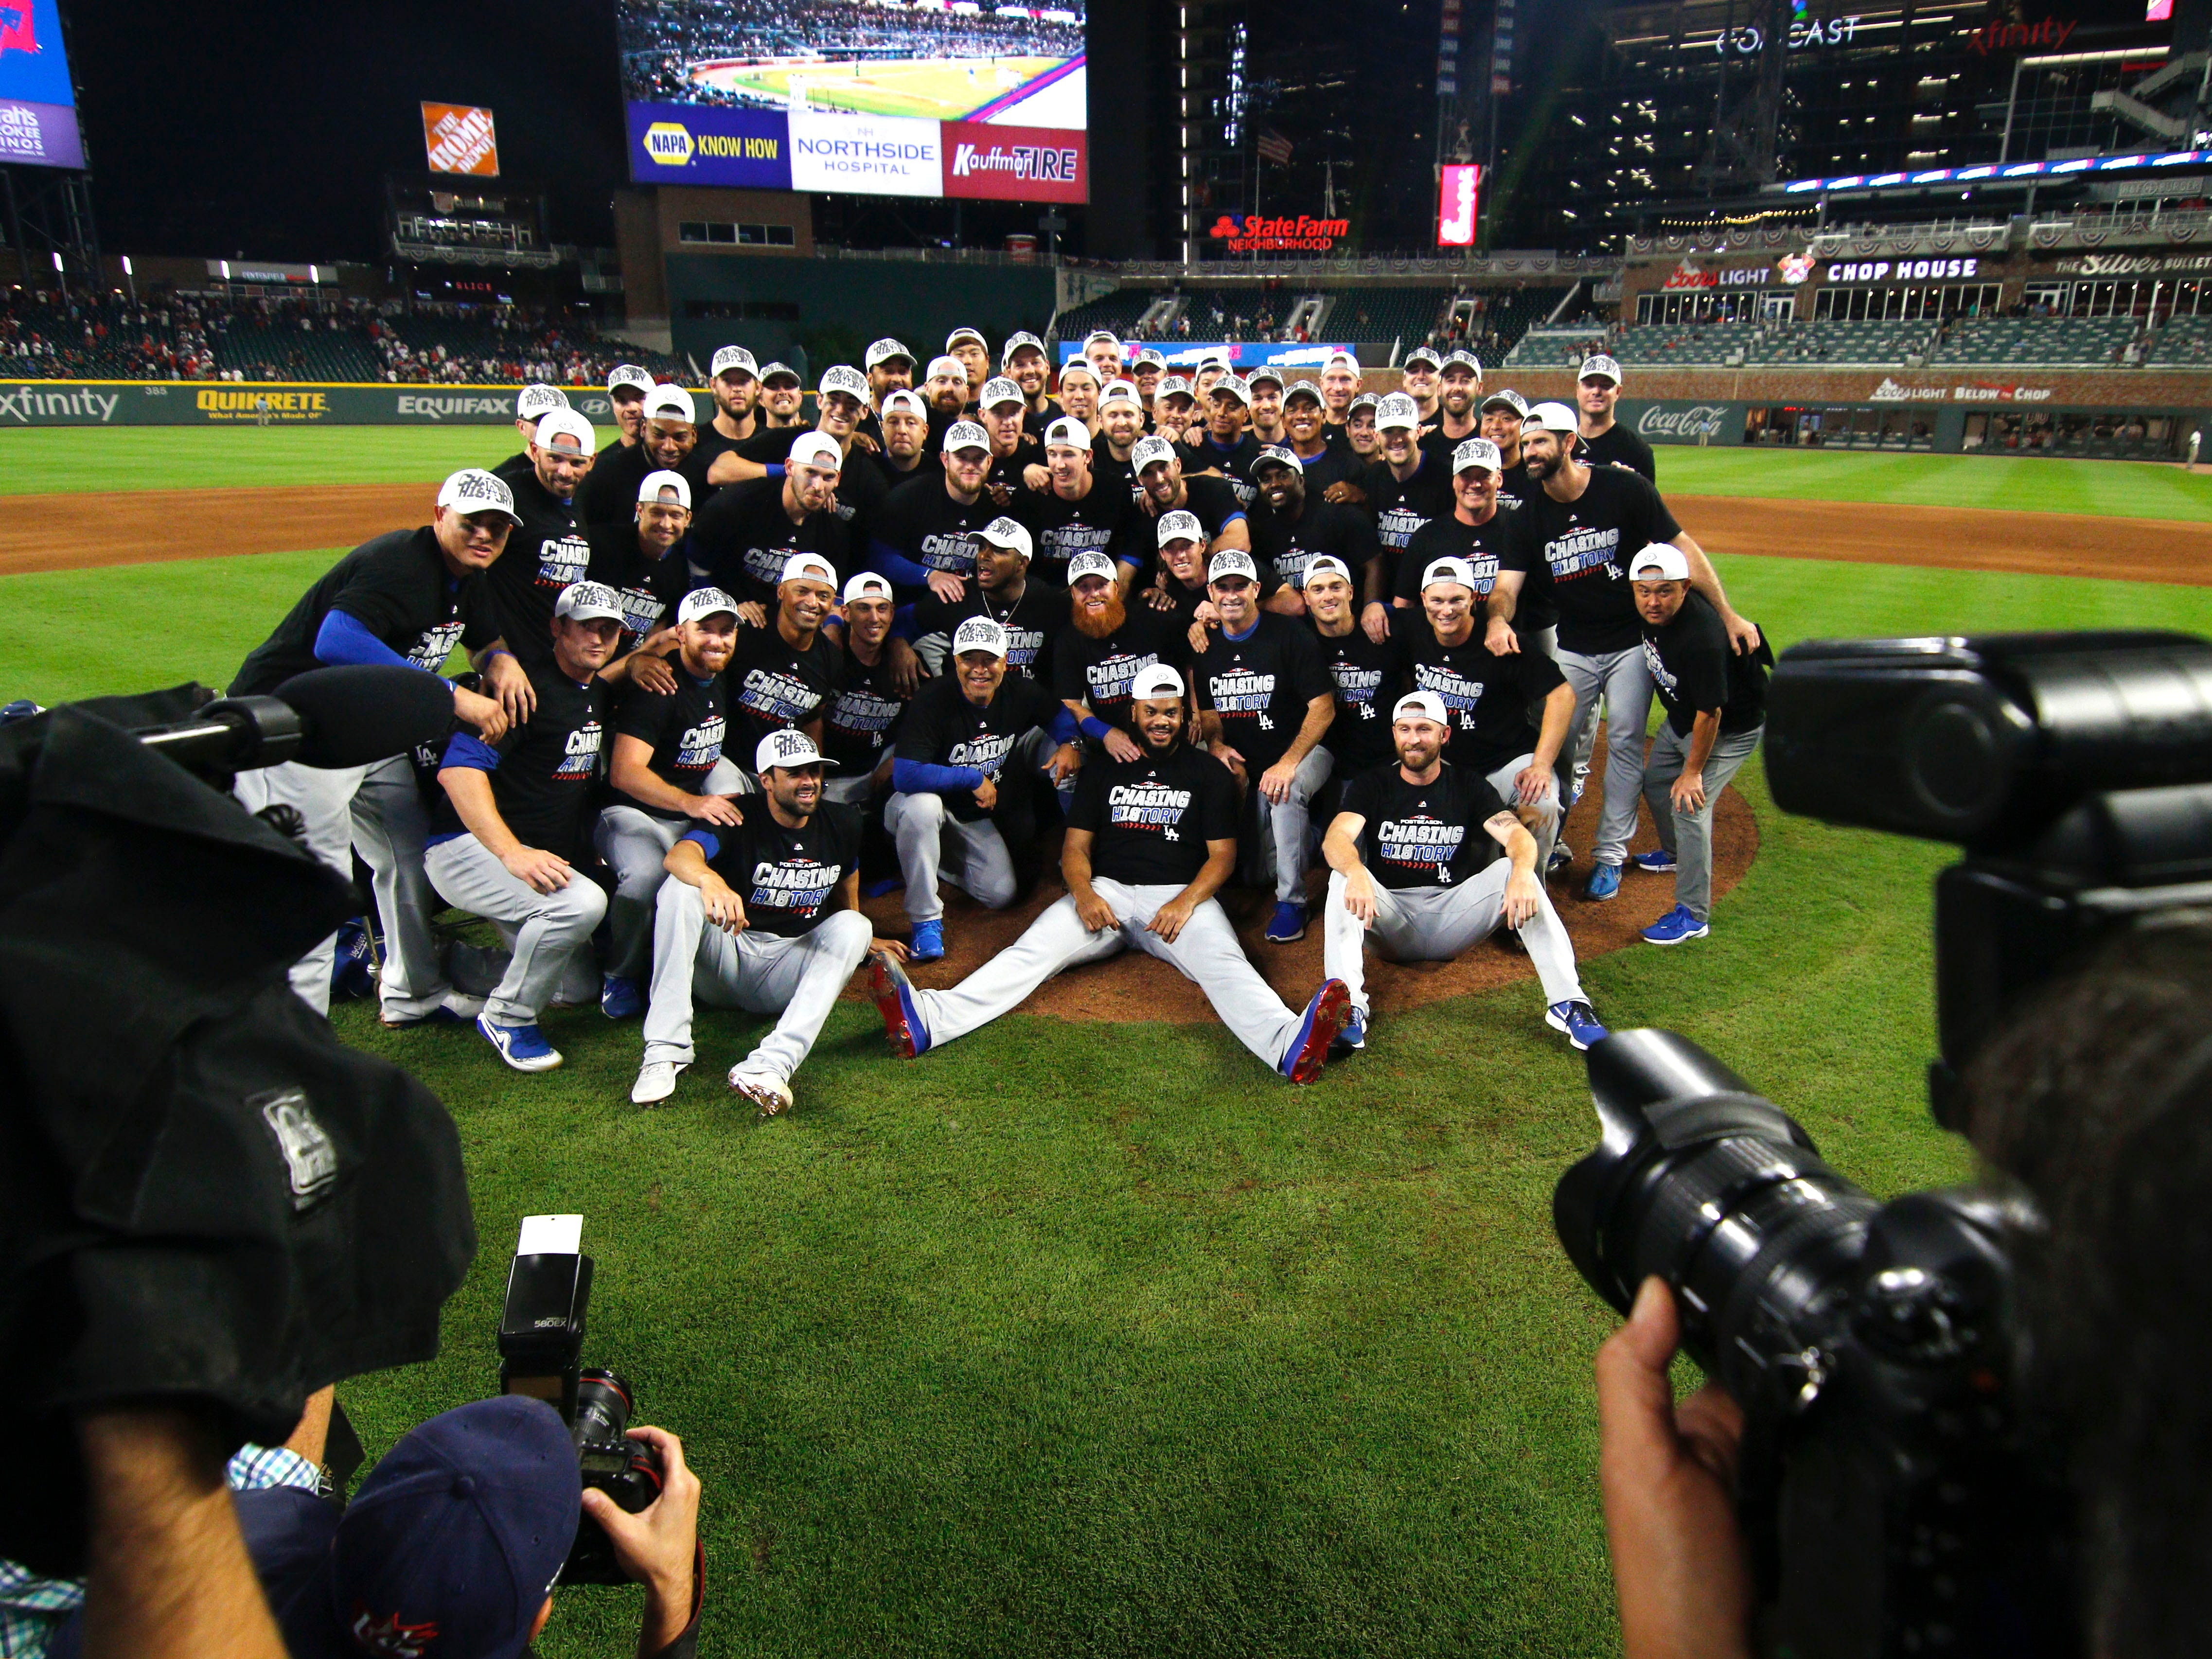 NLDS Game 4: A team photo of the Dodgers after knocking off the Braves.